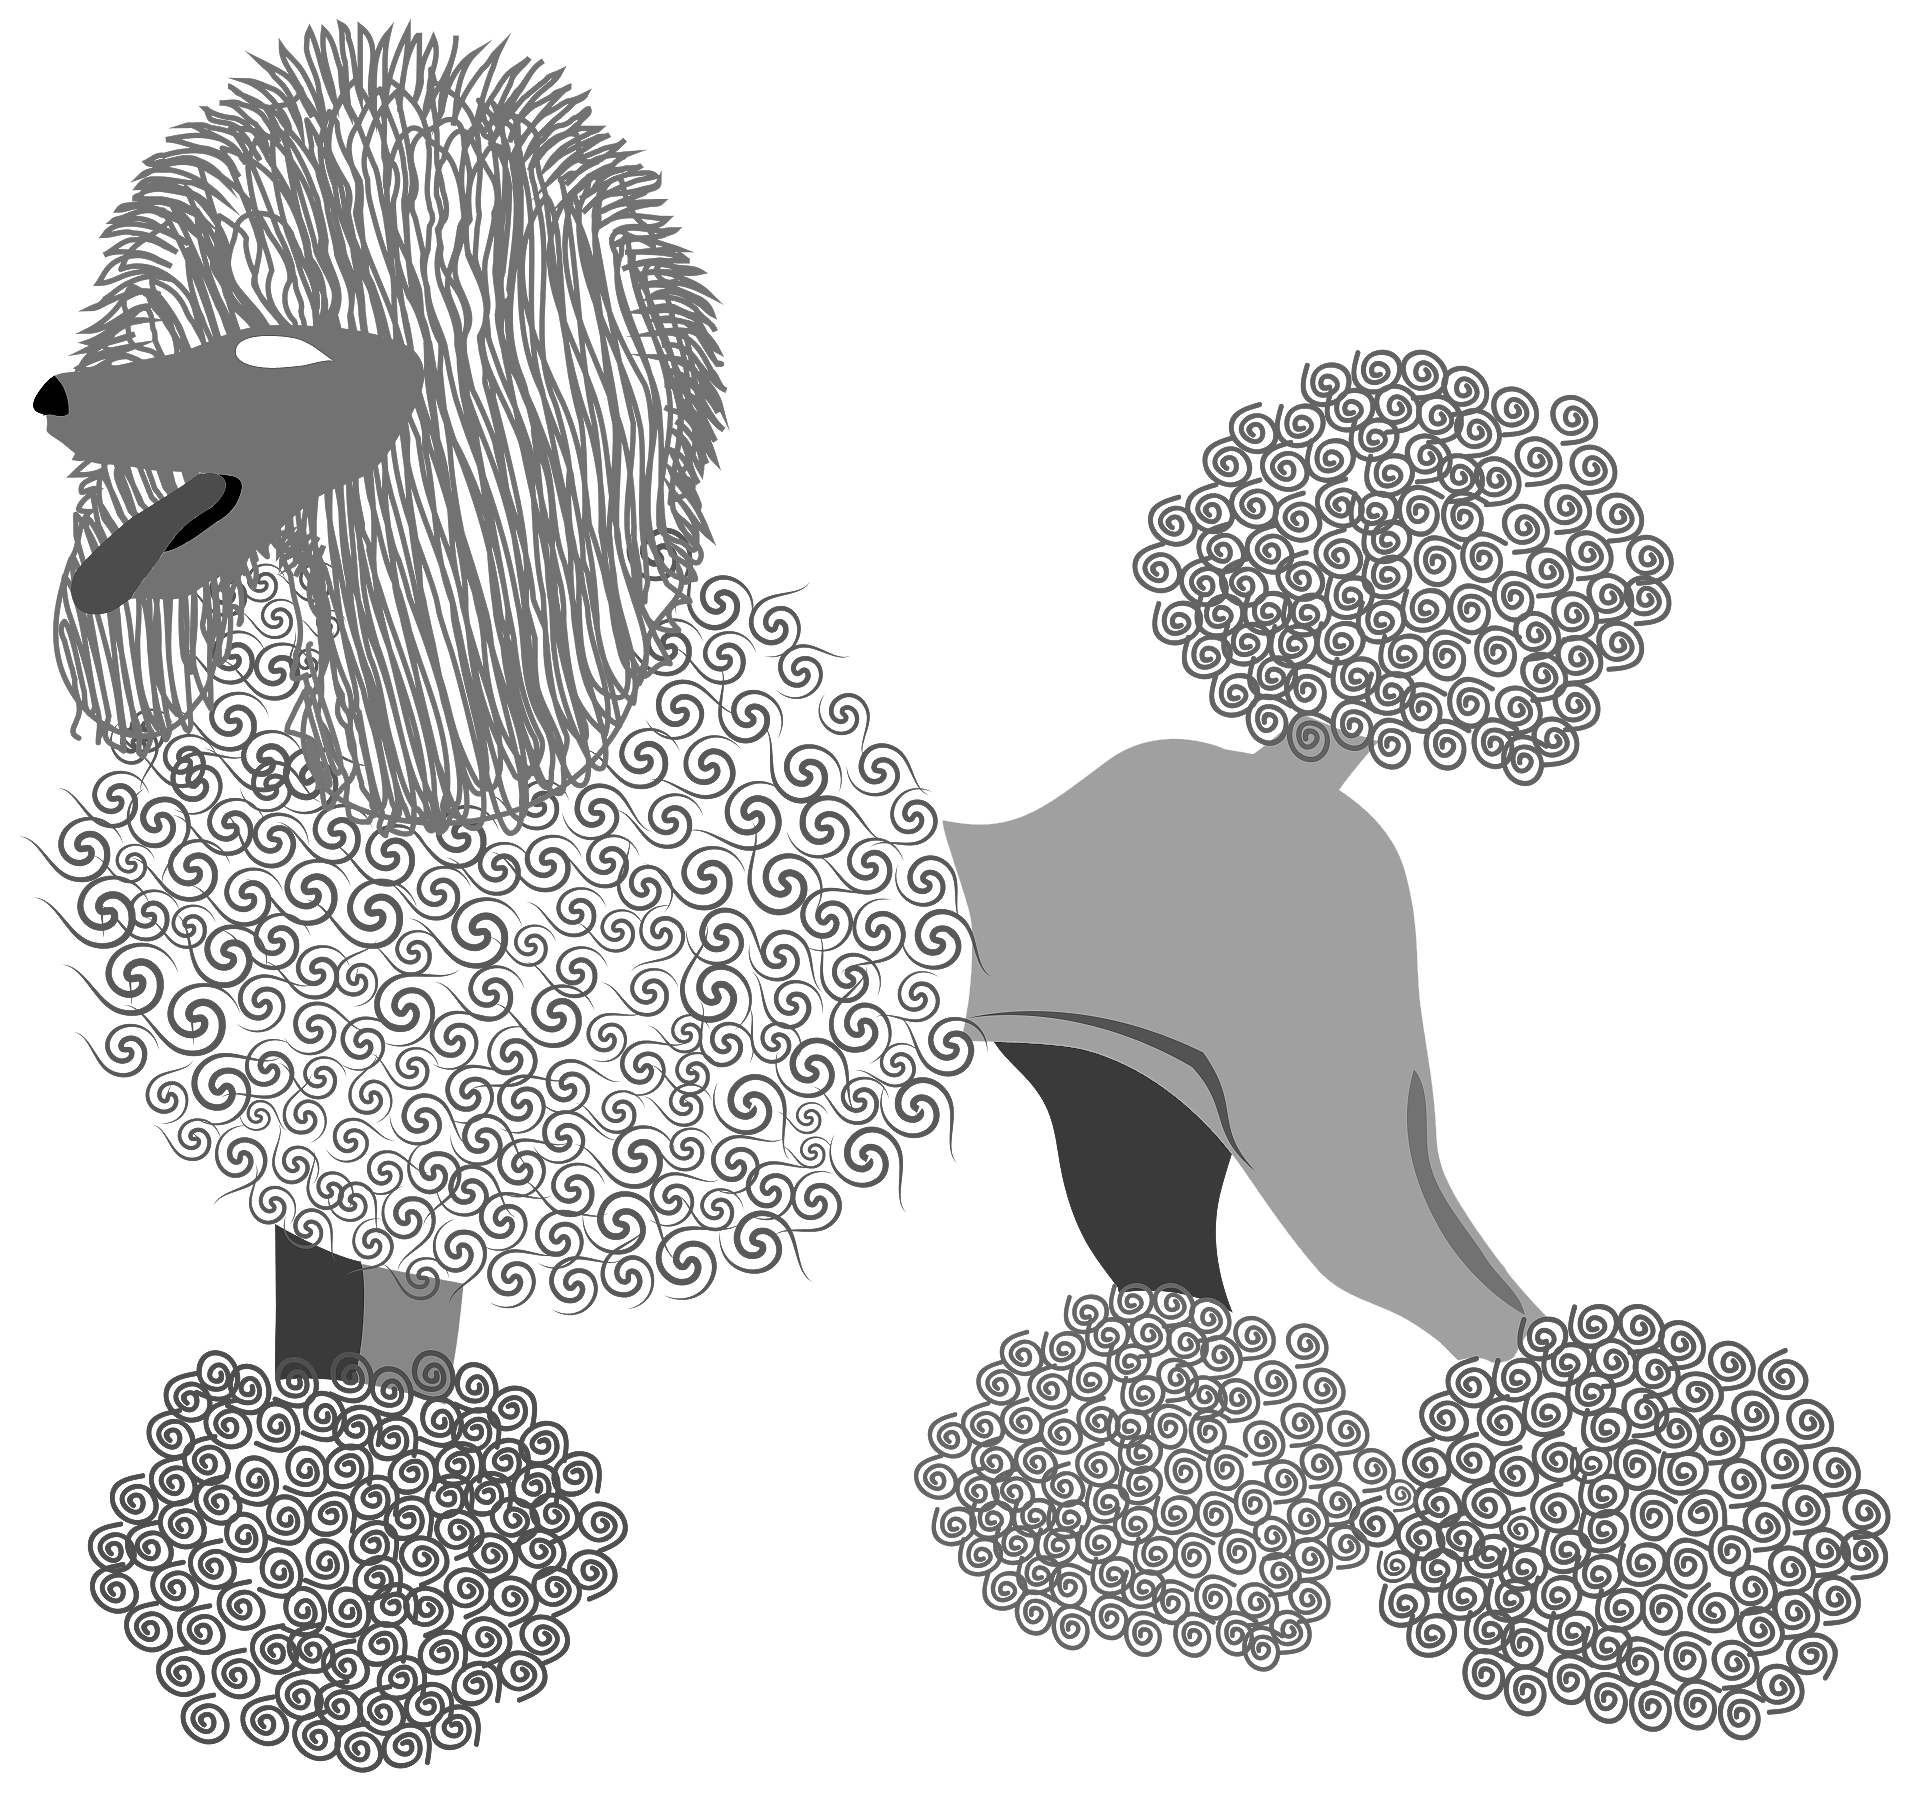 Sitting On The Dog (toy Poodle) Royalty Free Cliparts, Vectors, And Stock  Illustration. Image 102462527.